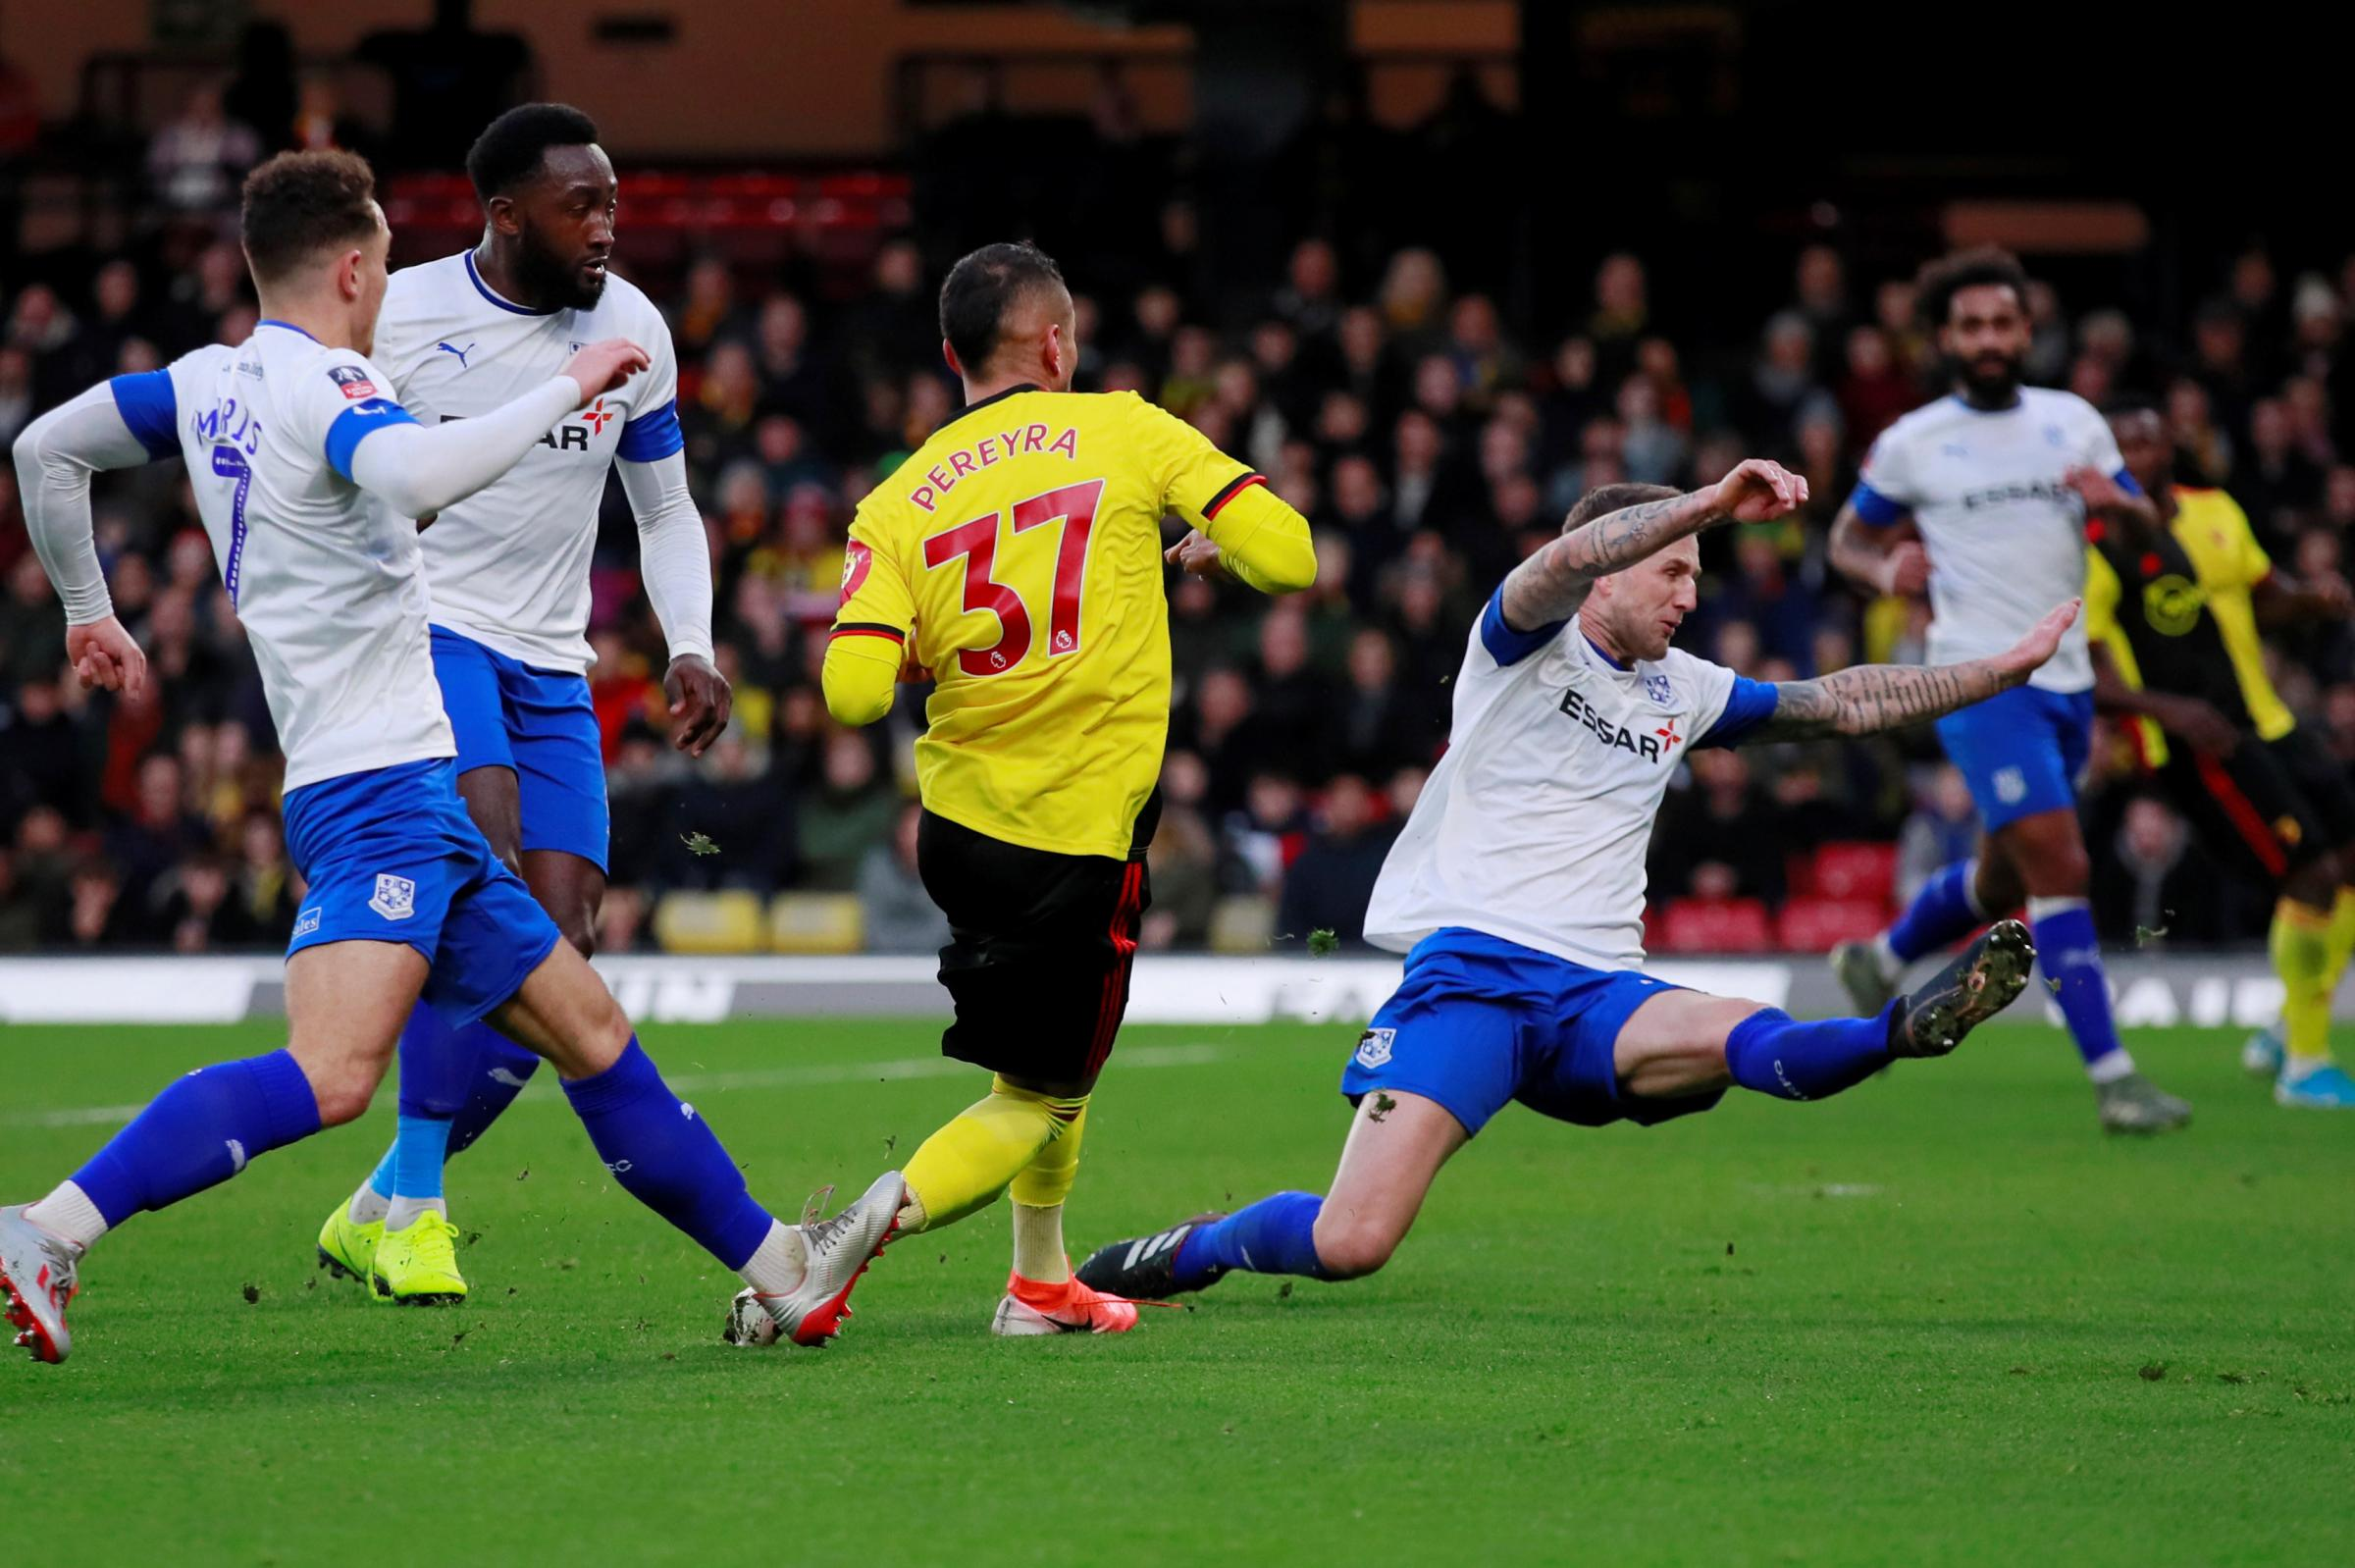 Watford's FA Cup replay at Tranmere Rovers rearranged for Thursday, January 23